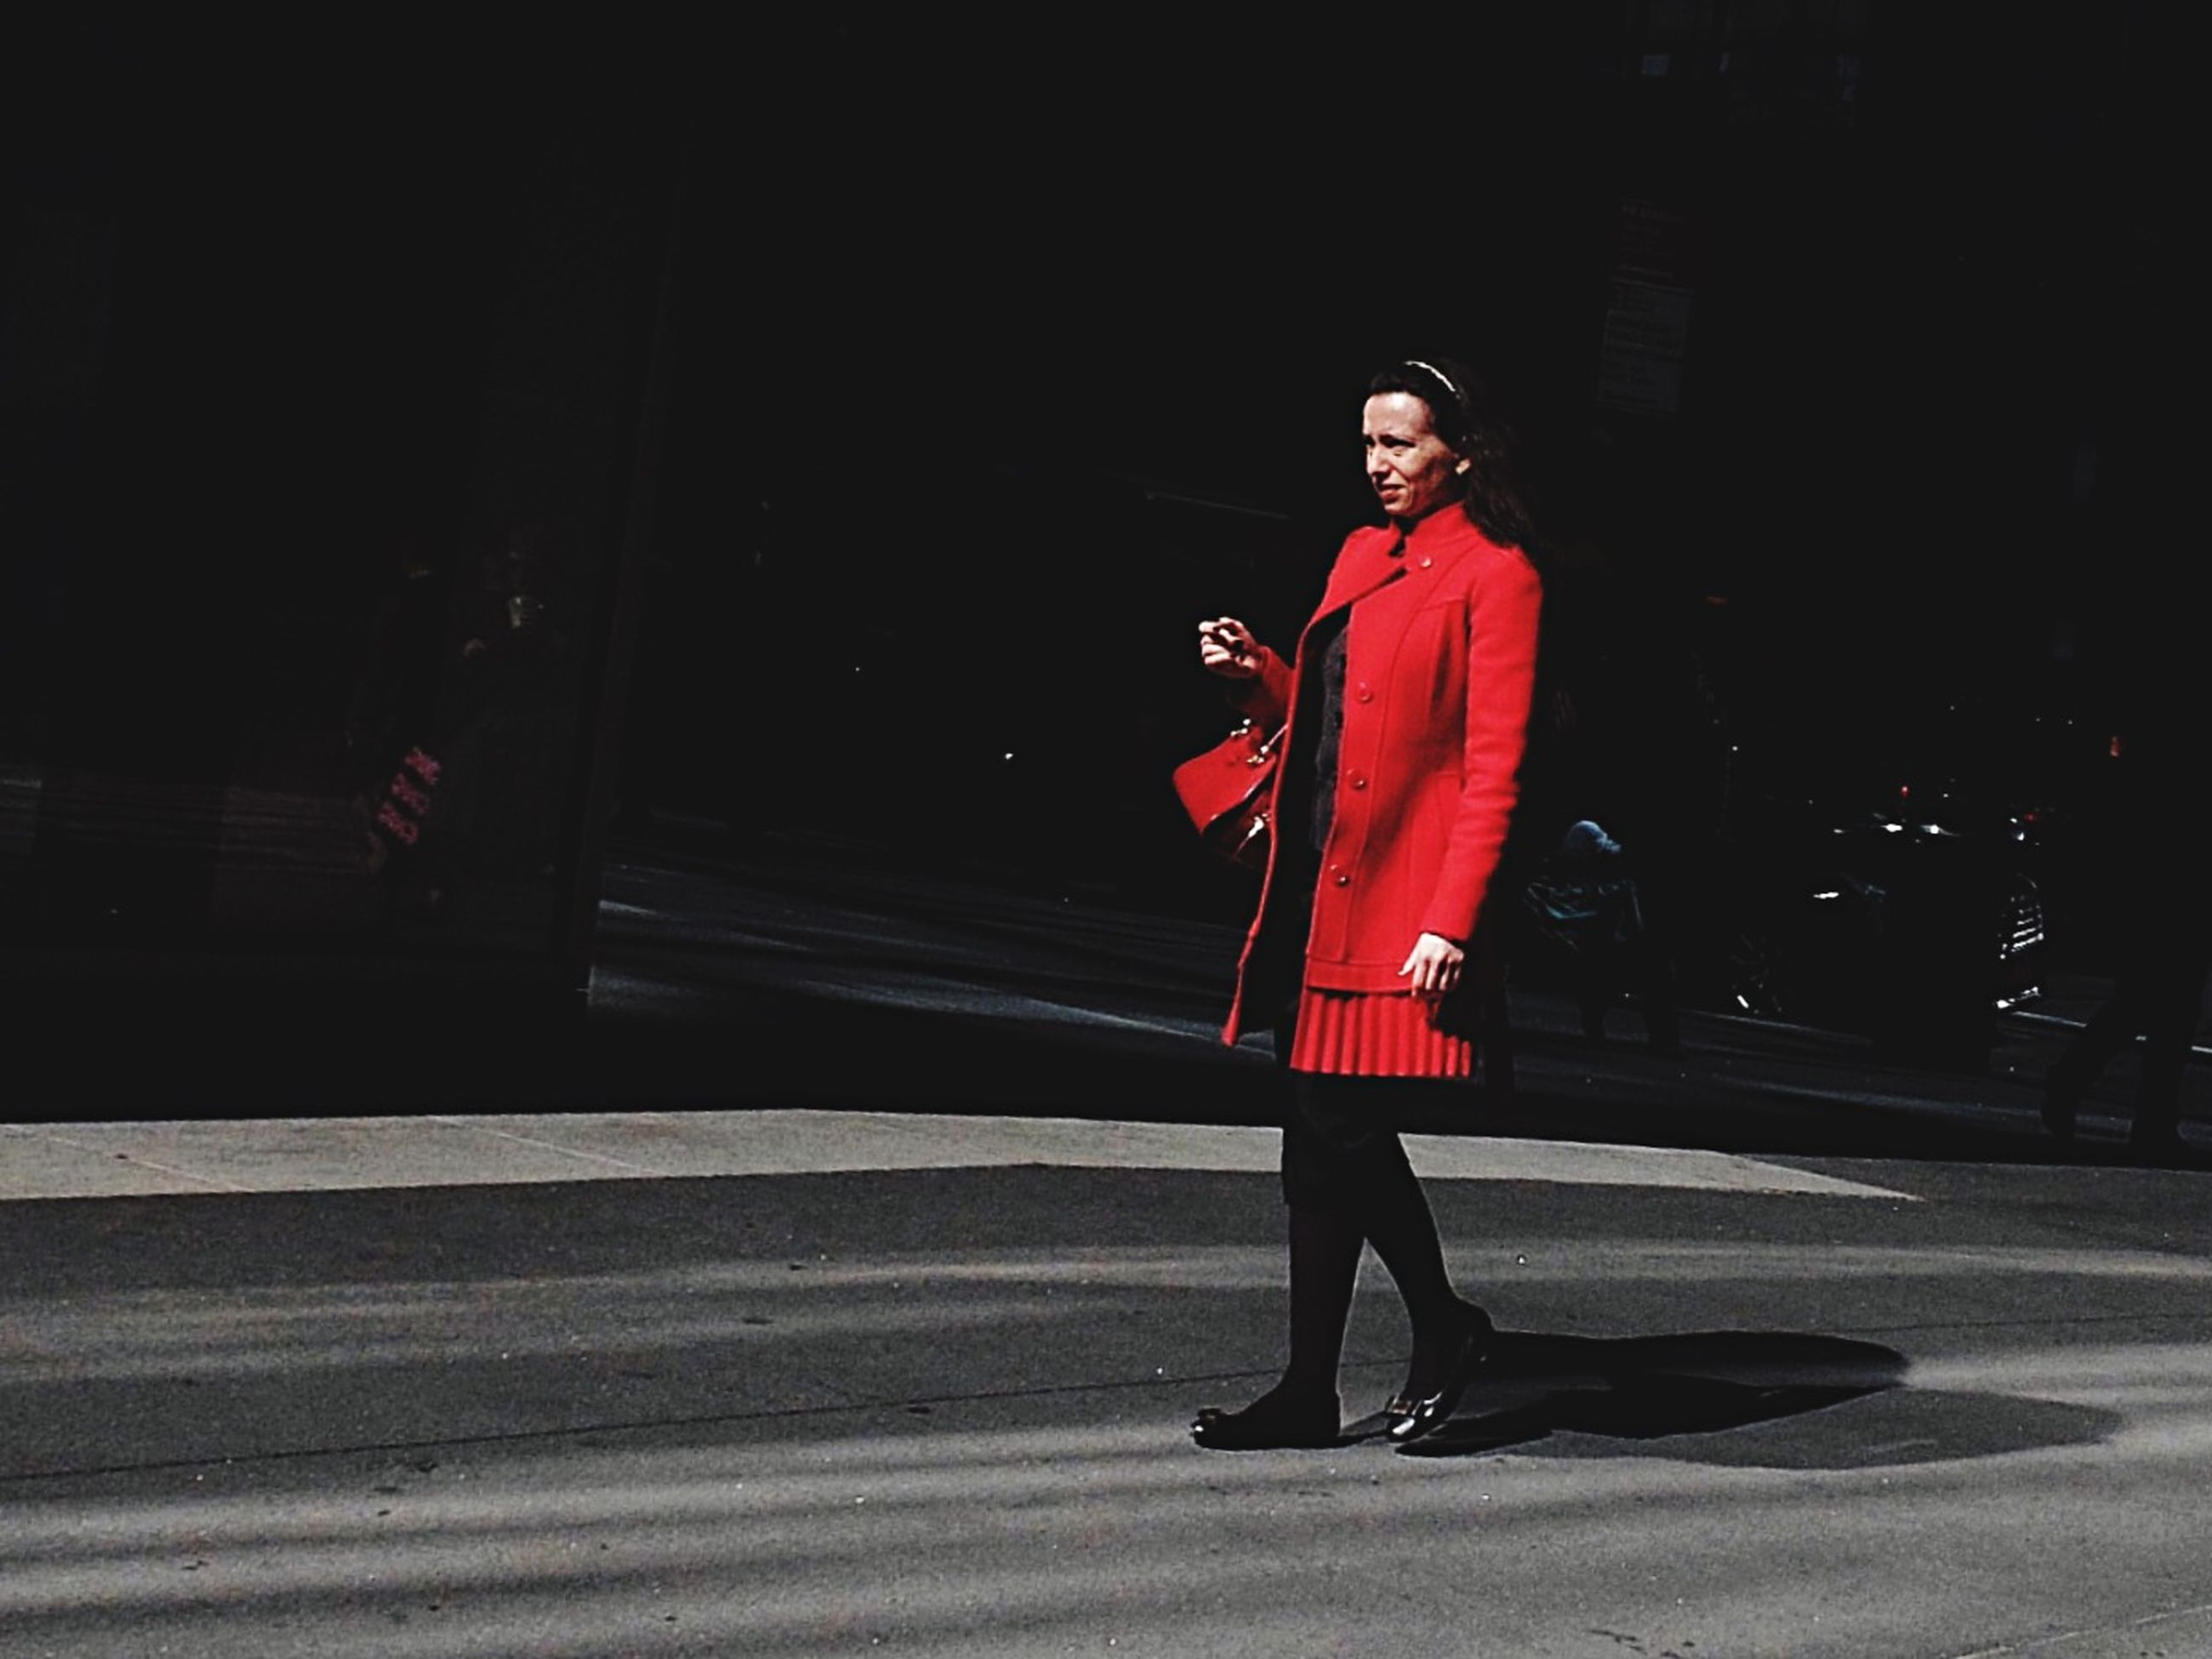 full length, red, walking, street, lifestyles, rear view, night, standing, casual clothing, person, road, leisure activity, men, sidewalk, shadow, front view, outdoors, side view